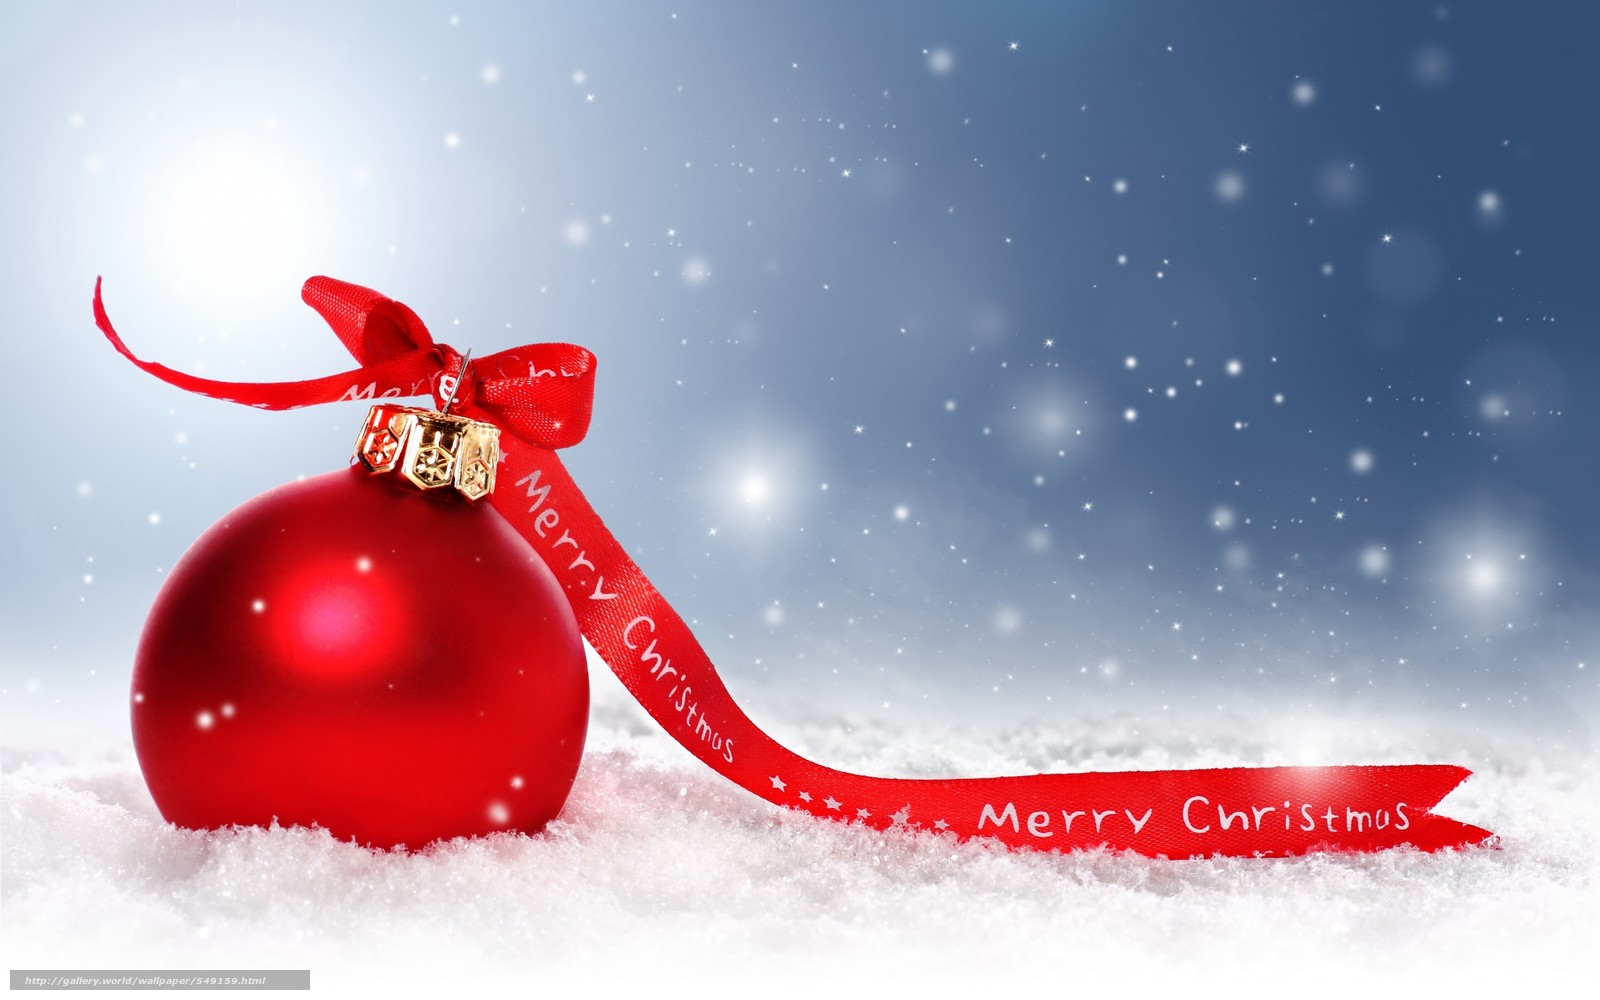 Download Wallpaper Merry, Christmas, Happy, Holidays - Christmas Ornament In Snow - HD Wallpaper